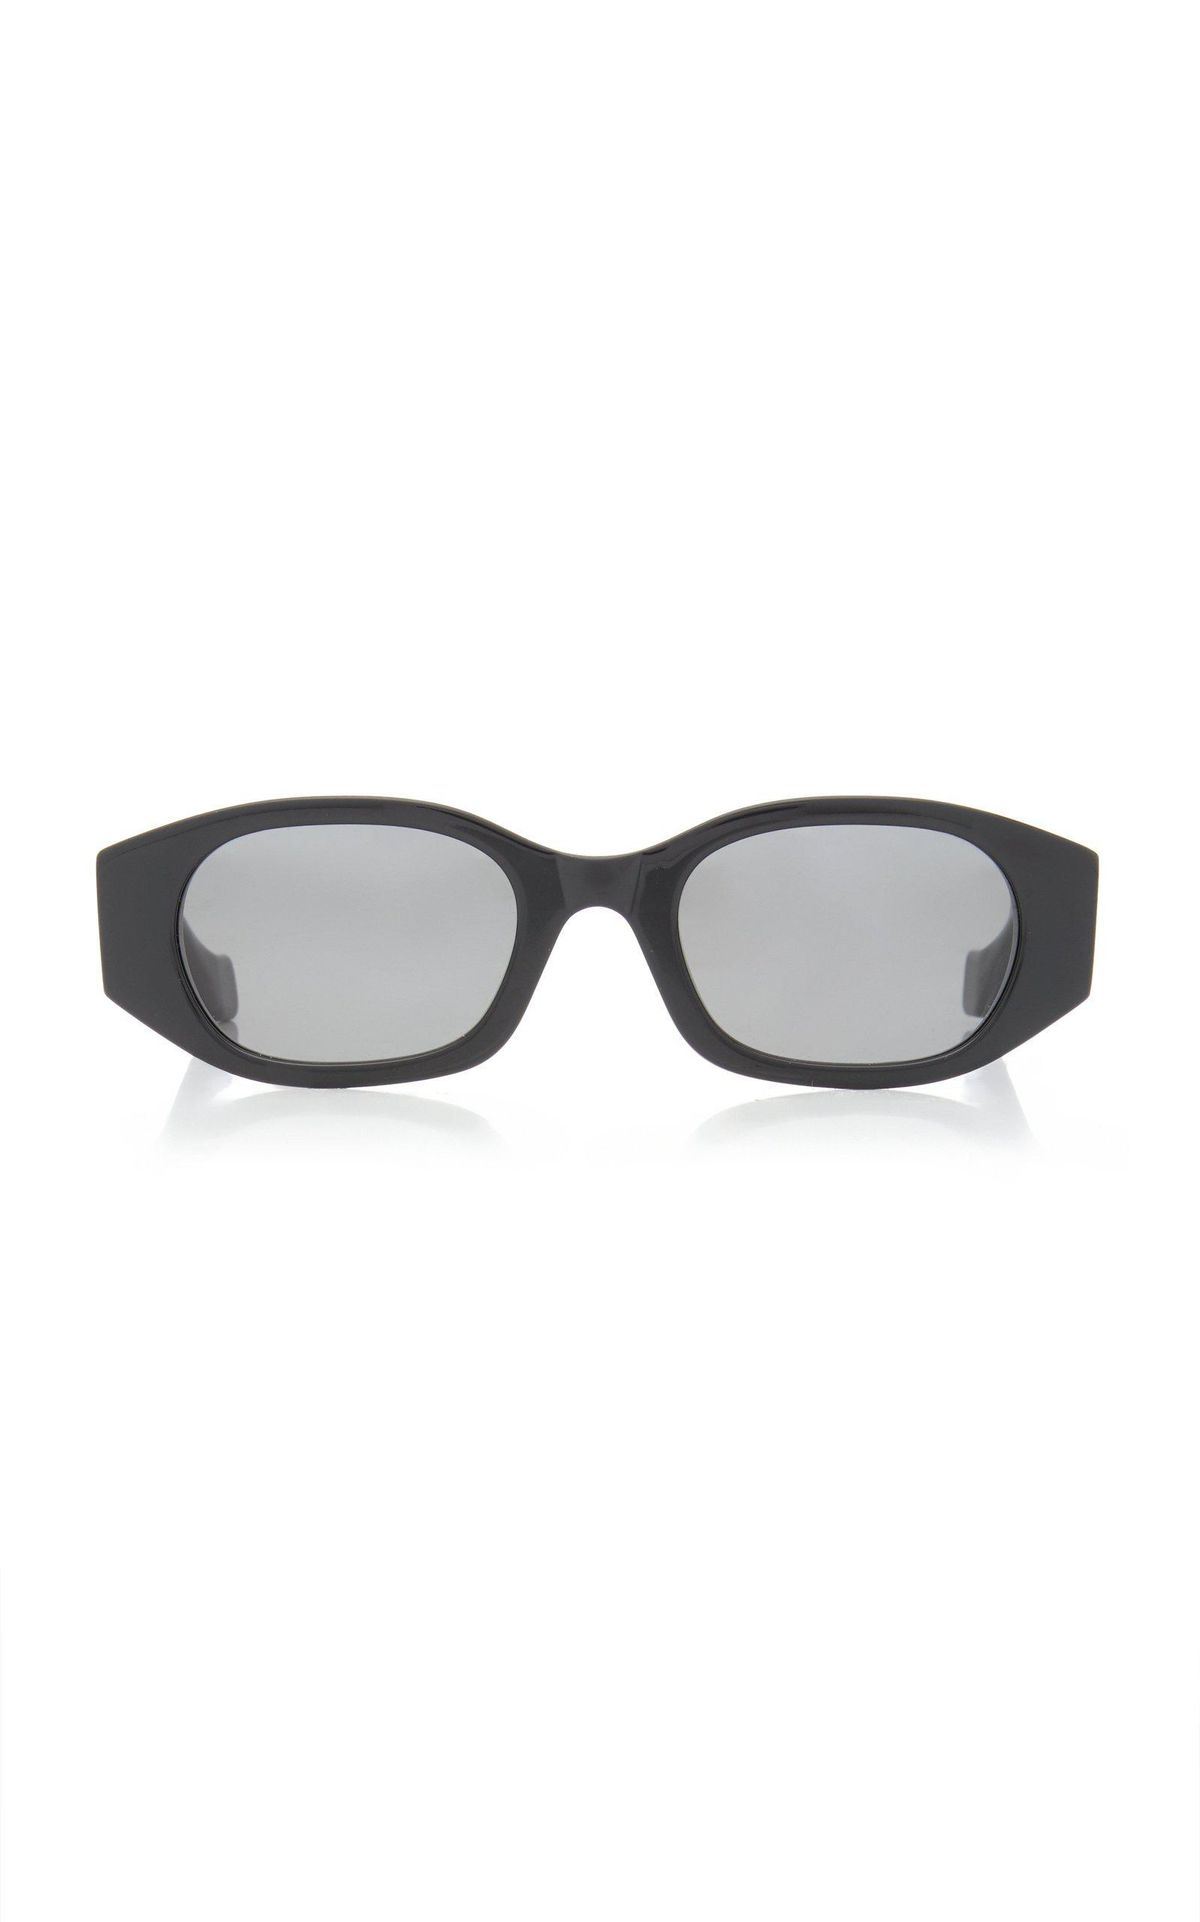 Oblong Oval-Frame Acetate Sunglasses